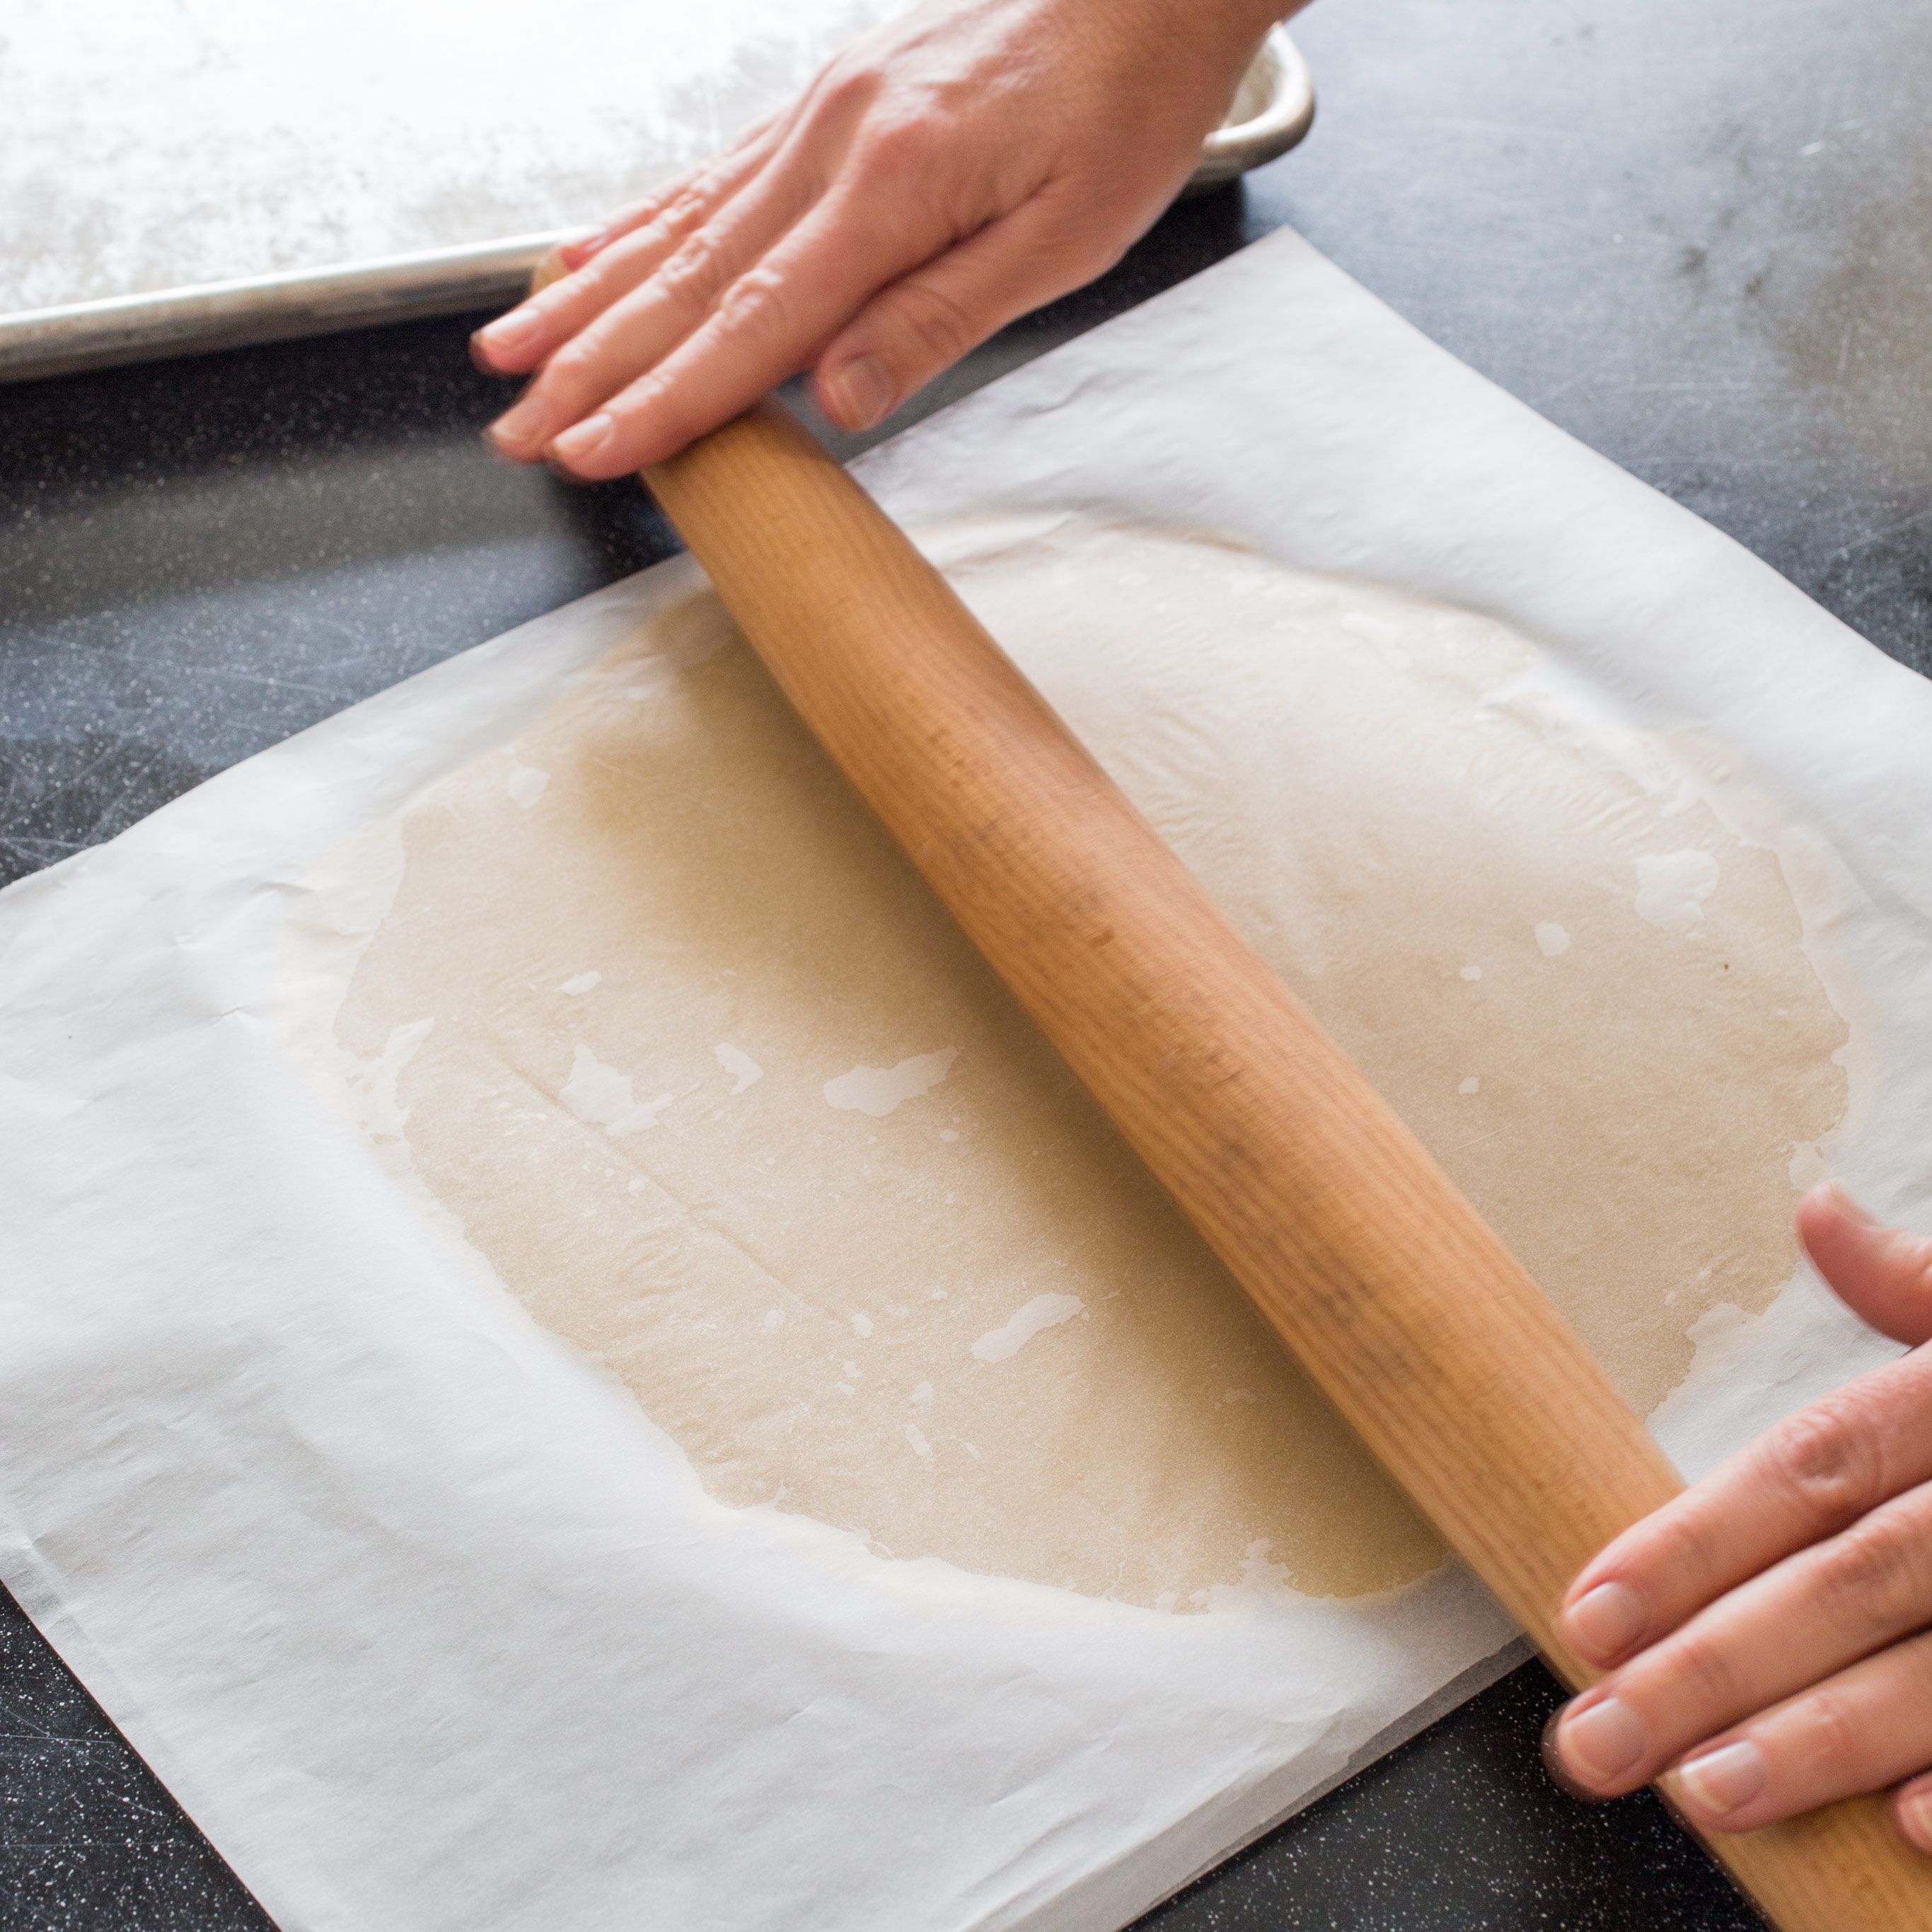 How to roll out the dough